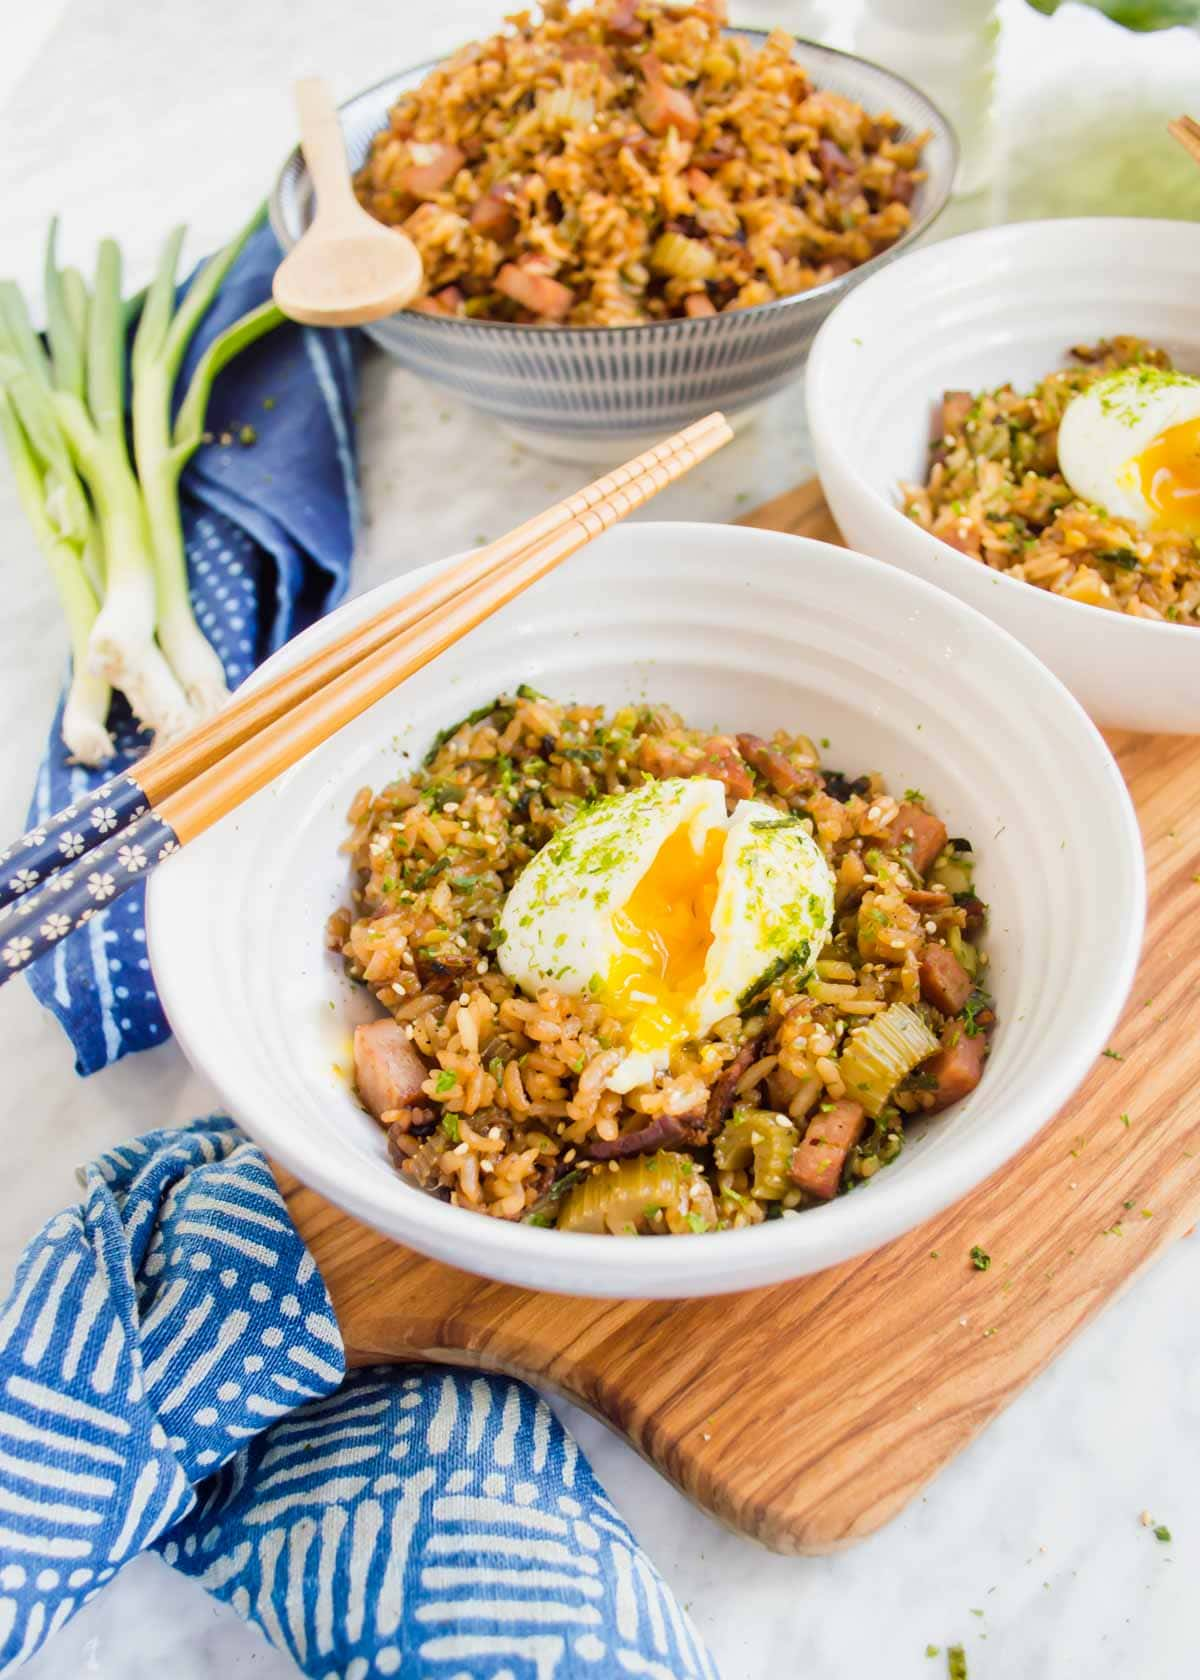 Shoyu Breakfast Fried Rice in bowls with soft boiled eggs.